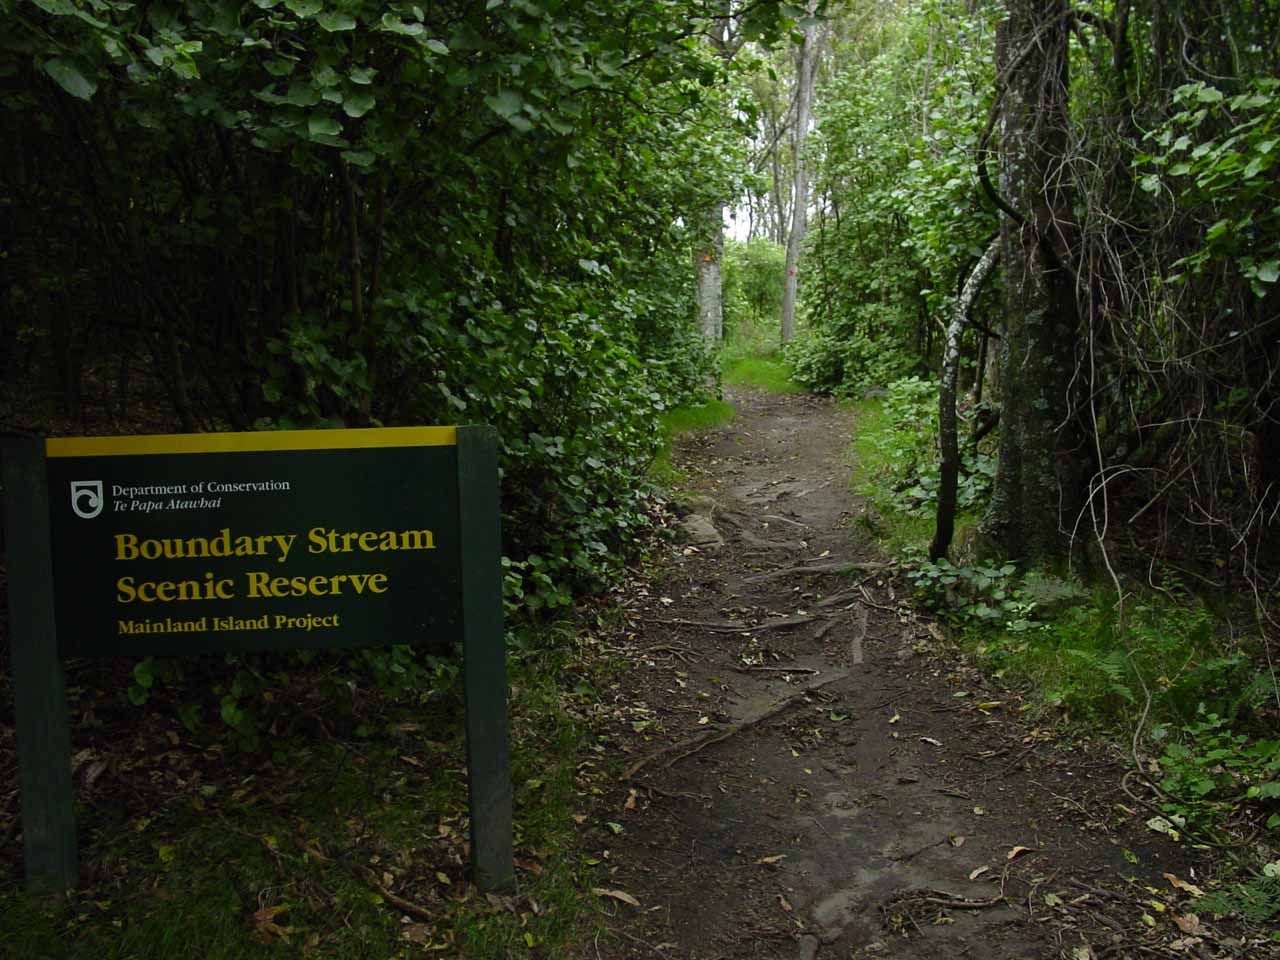 Sign declaring that we were entering the Boundary Stream Scenic Reserve